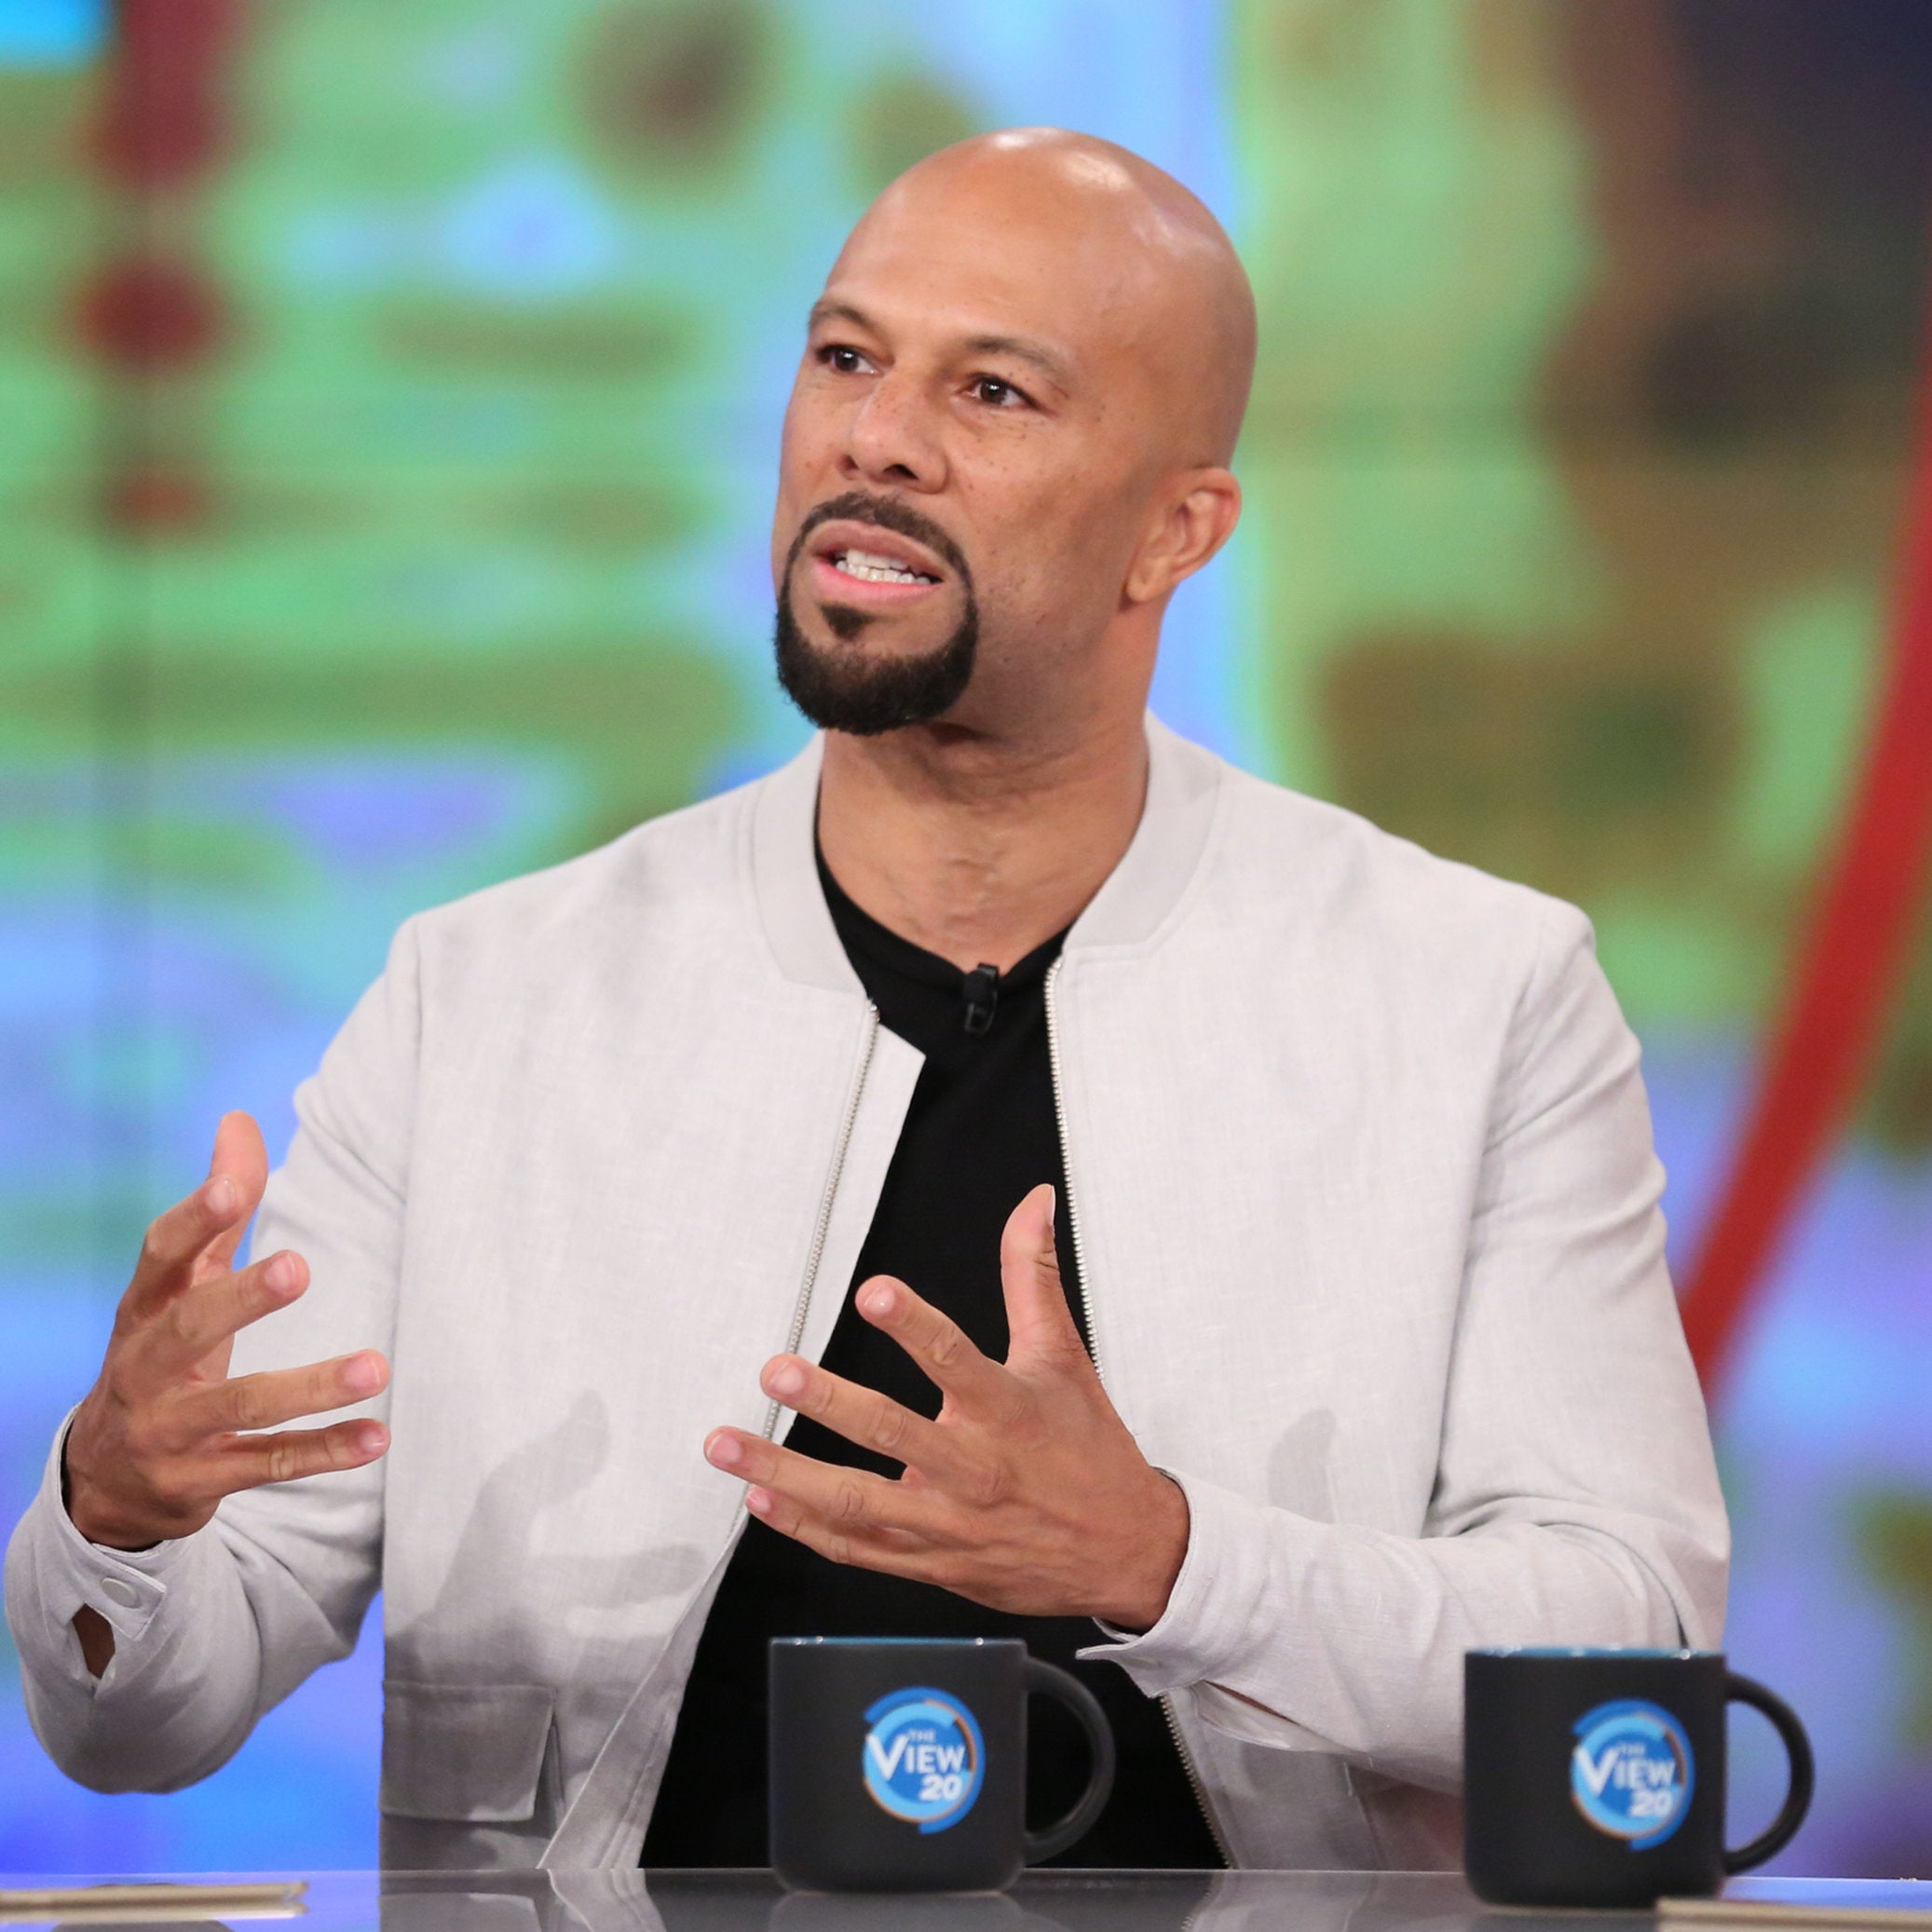 Common Delivers Some Common Sense On Election 2016 - 'Donald Trump Is Not Prepared To Be A President'